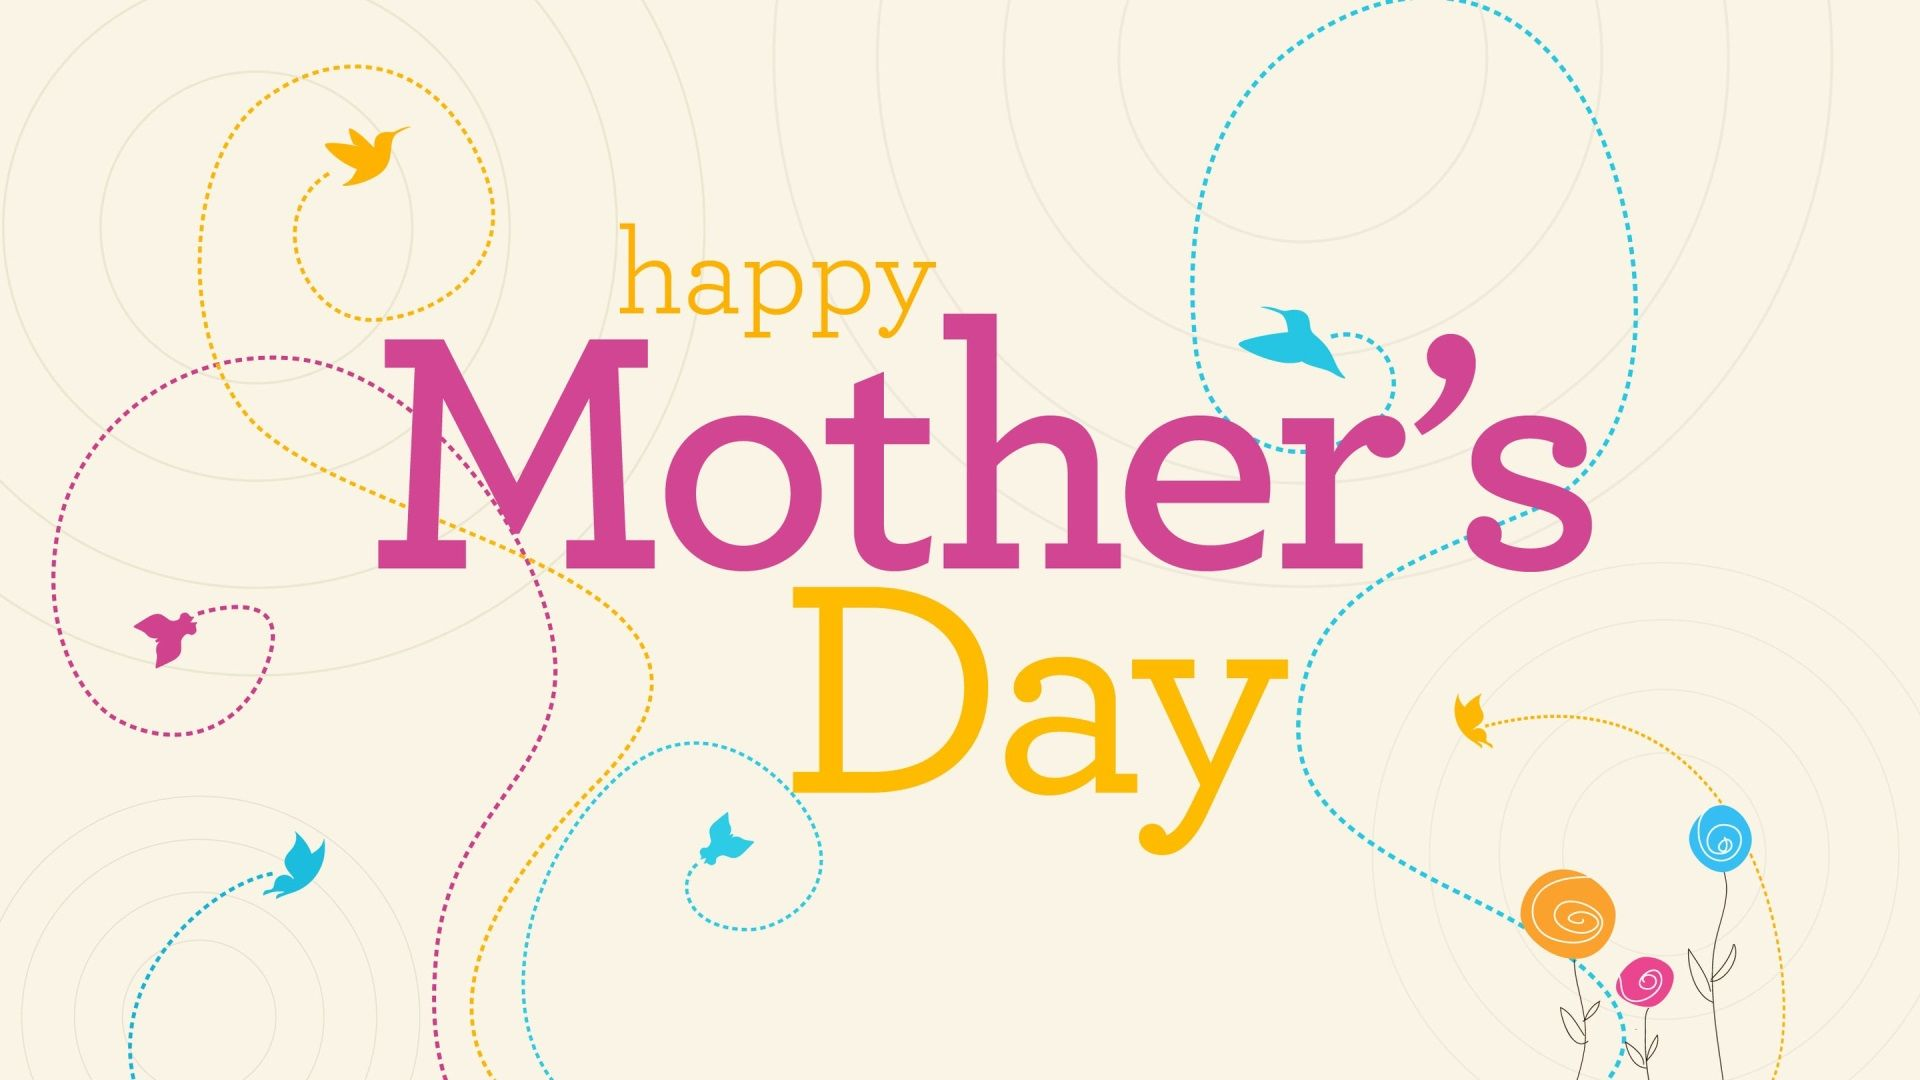 1920x1080 Happy Mothers Day Desktop Background Hd Wallpaper Happy Mothers Day Wishes Mother Day Wishes Mothers Day Quotes